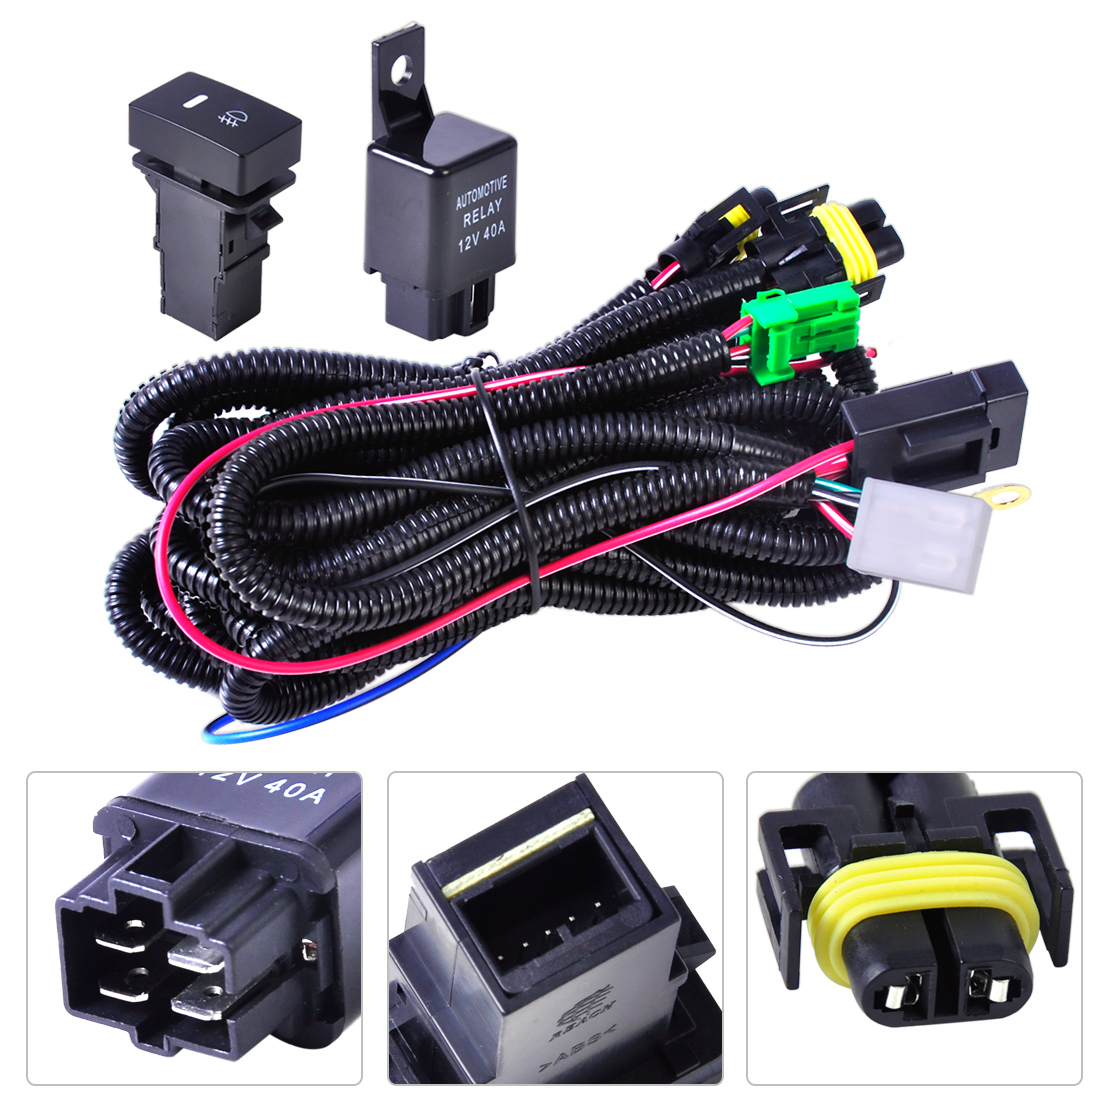 DWCX Wiring Harness Sockets Wire+Switch for H11 Fog Light Lamp for Ford  Focus 2008